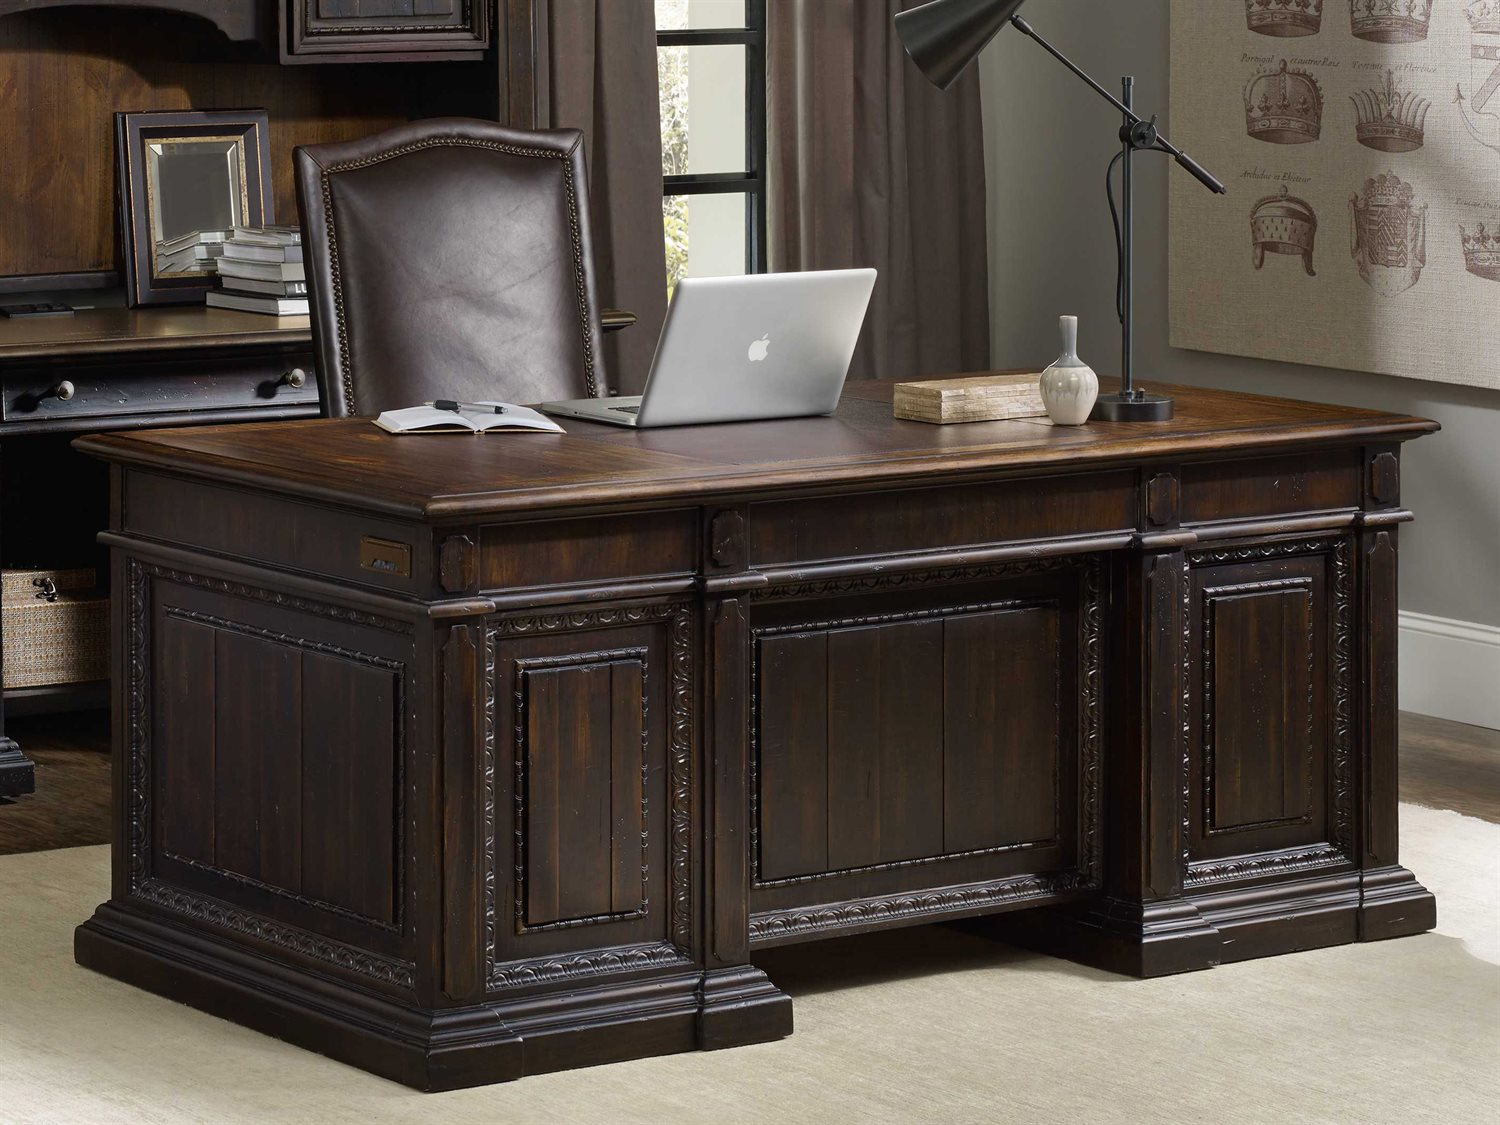 Executive Office Furniture: Hooker Furniture Treviso Rich Dark Macchiato 72''L X 36''W